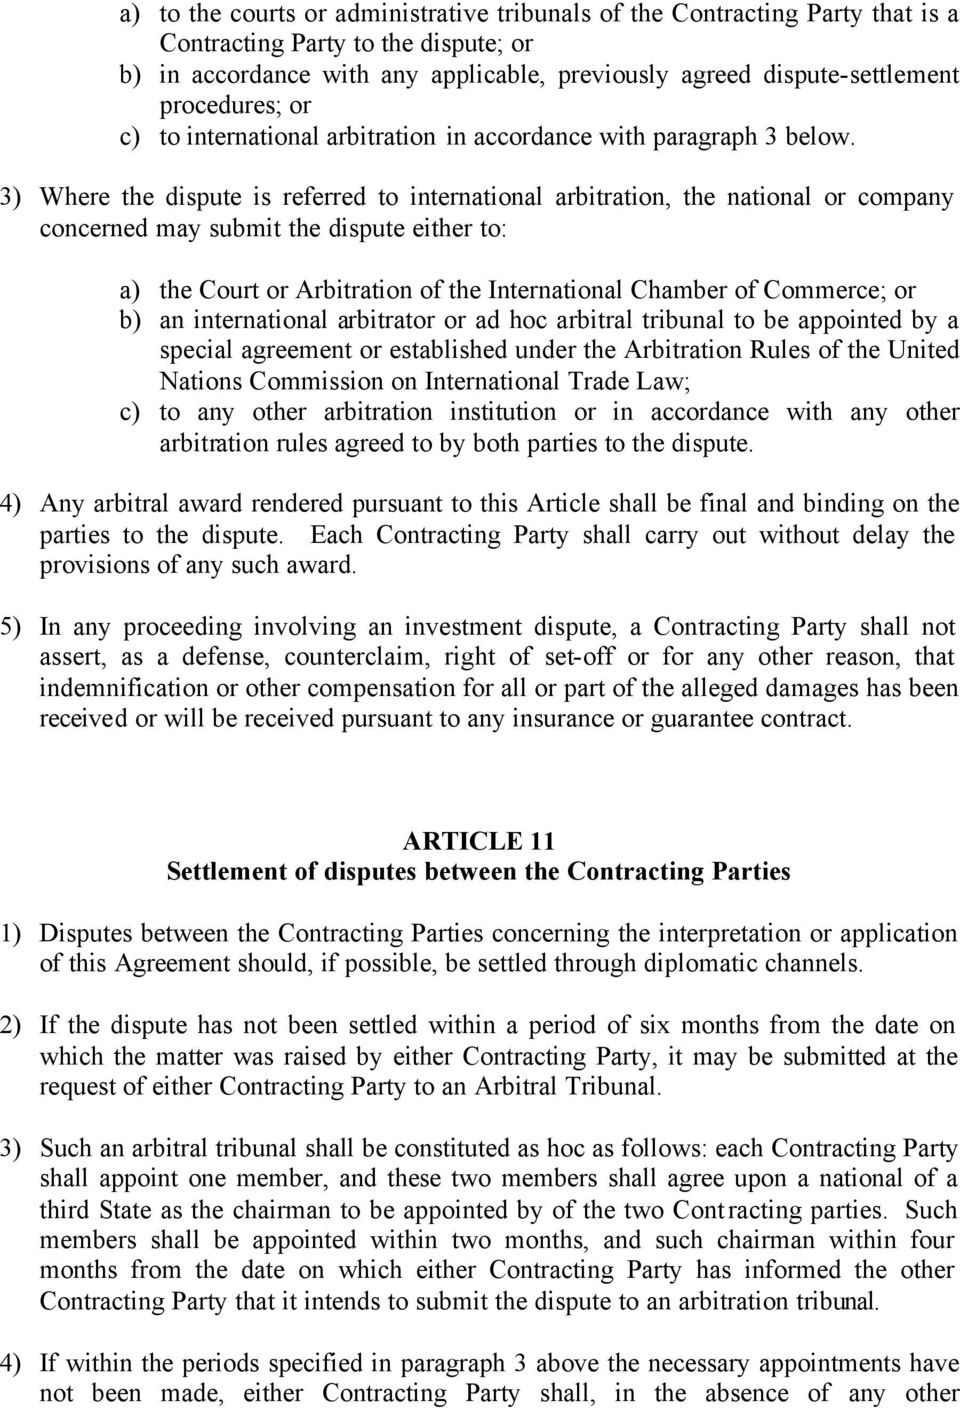 3) Where the dispute is referred to international arbitration, the national or company concerned may submit the dispute either to: a) the Court or Arbitration of the International Chamber of